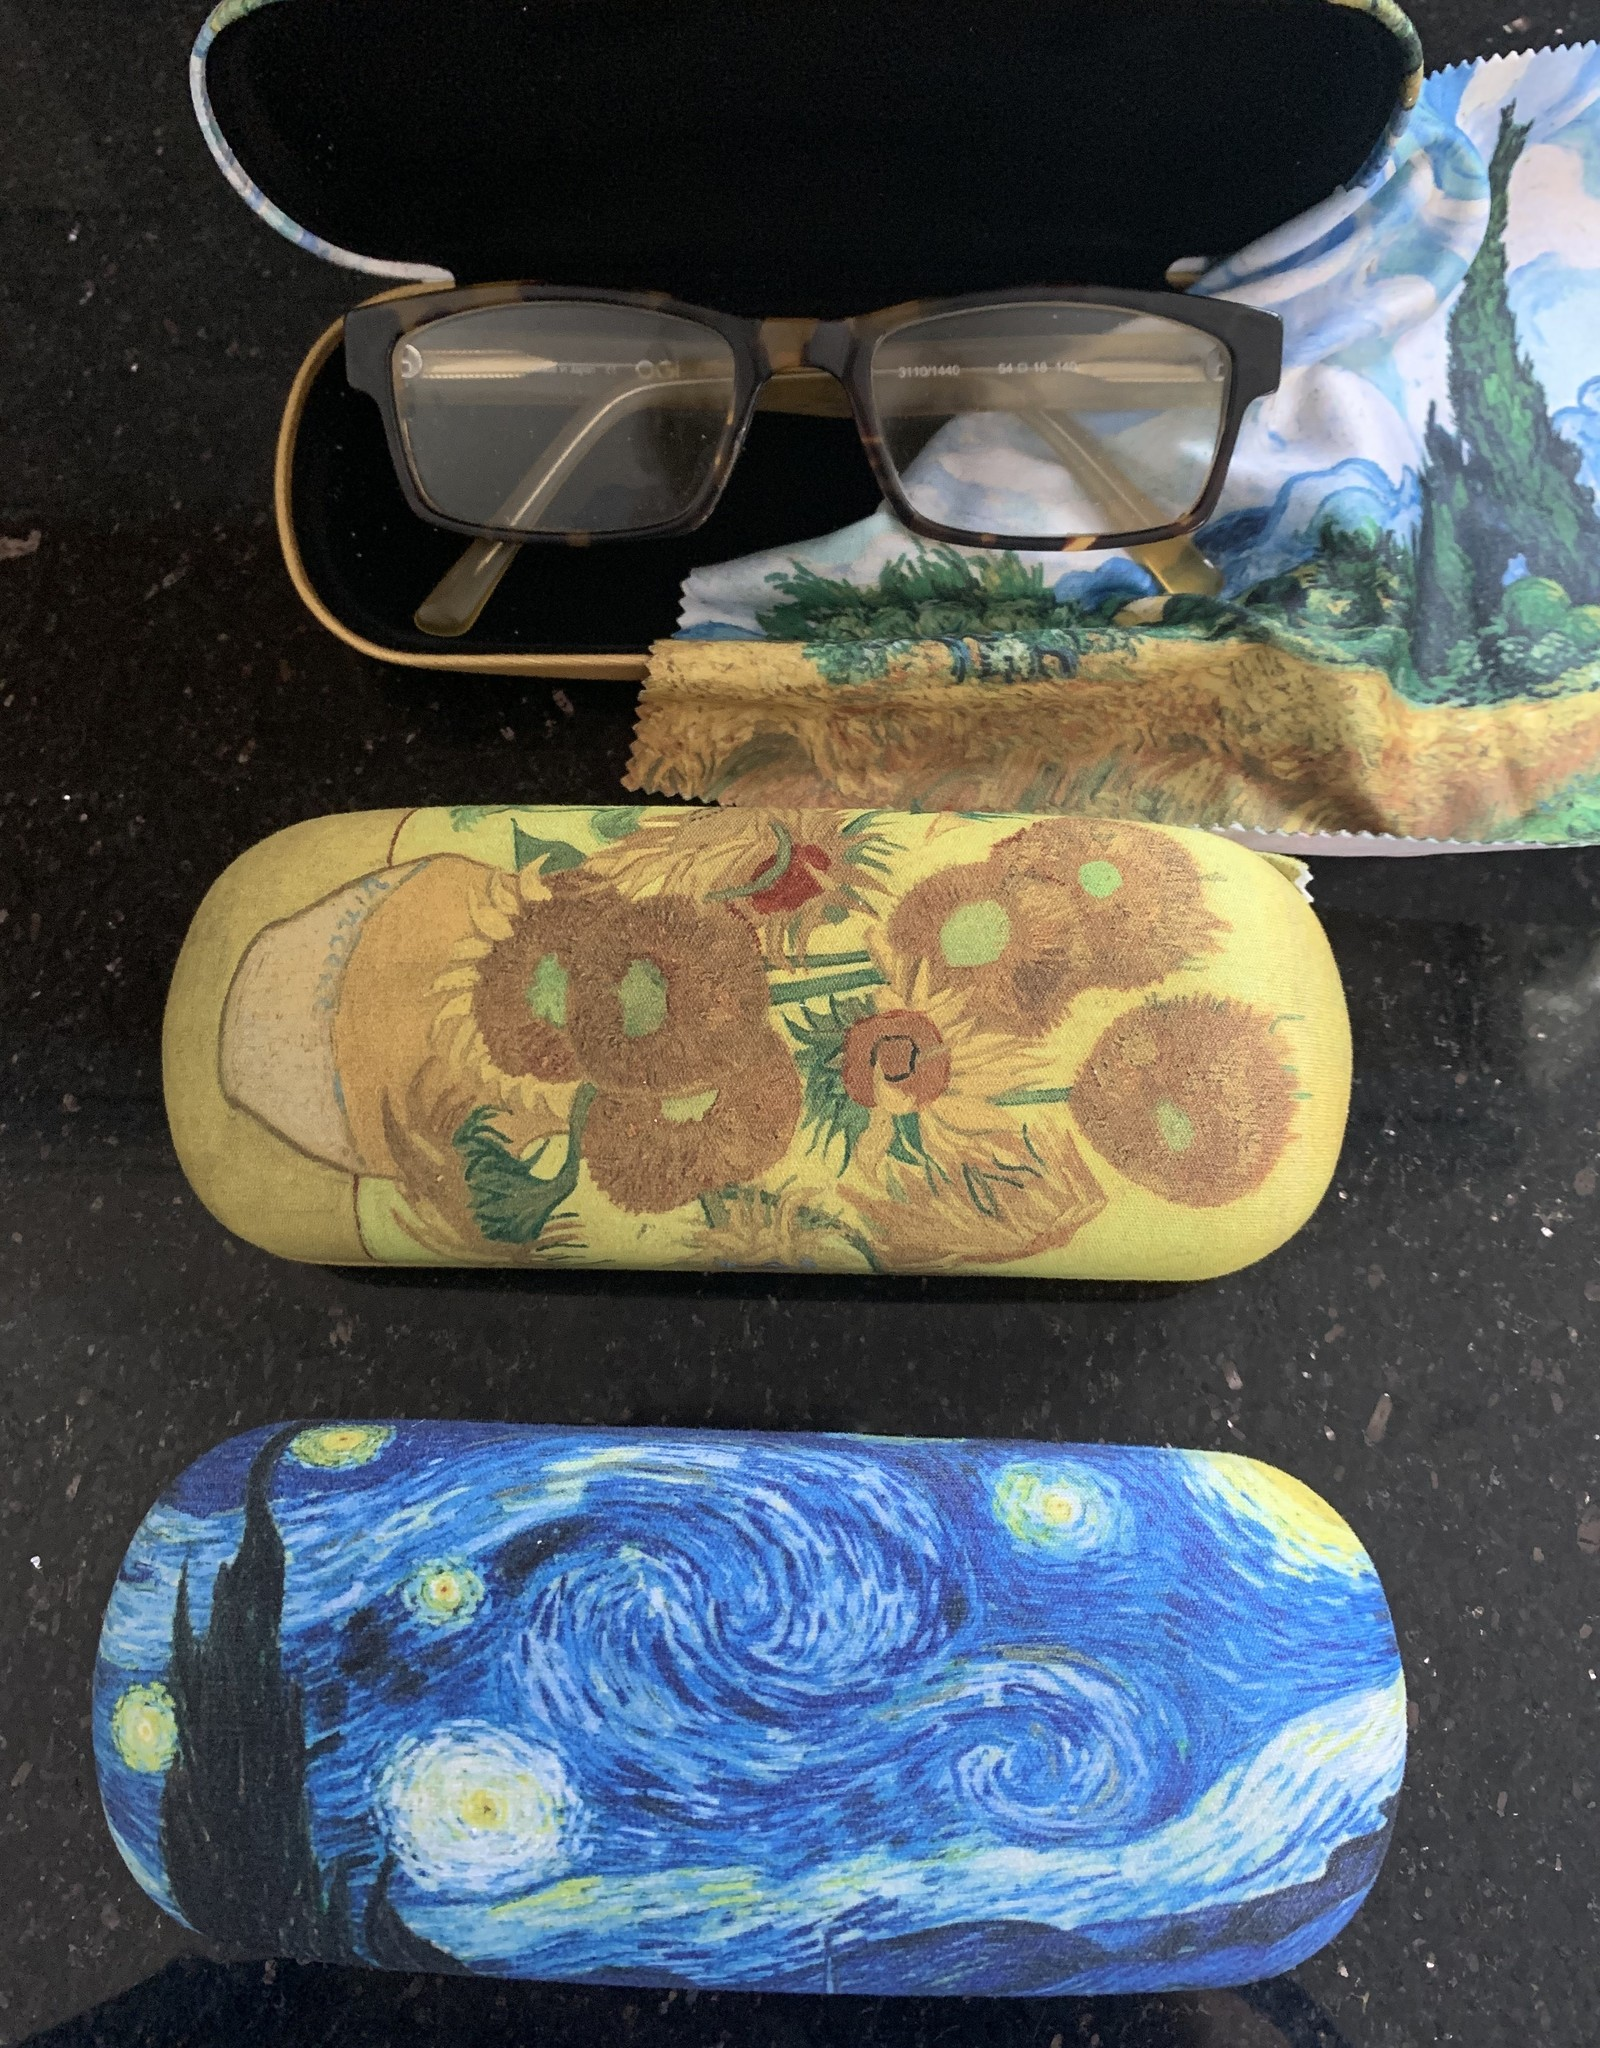 GIFTCRAFT INC. Masterpiece Eyeglass Cases